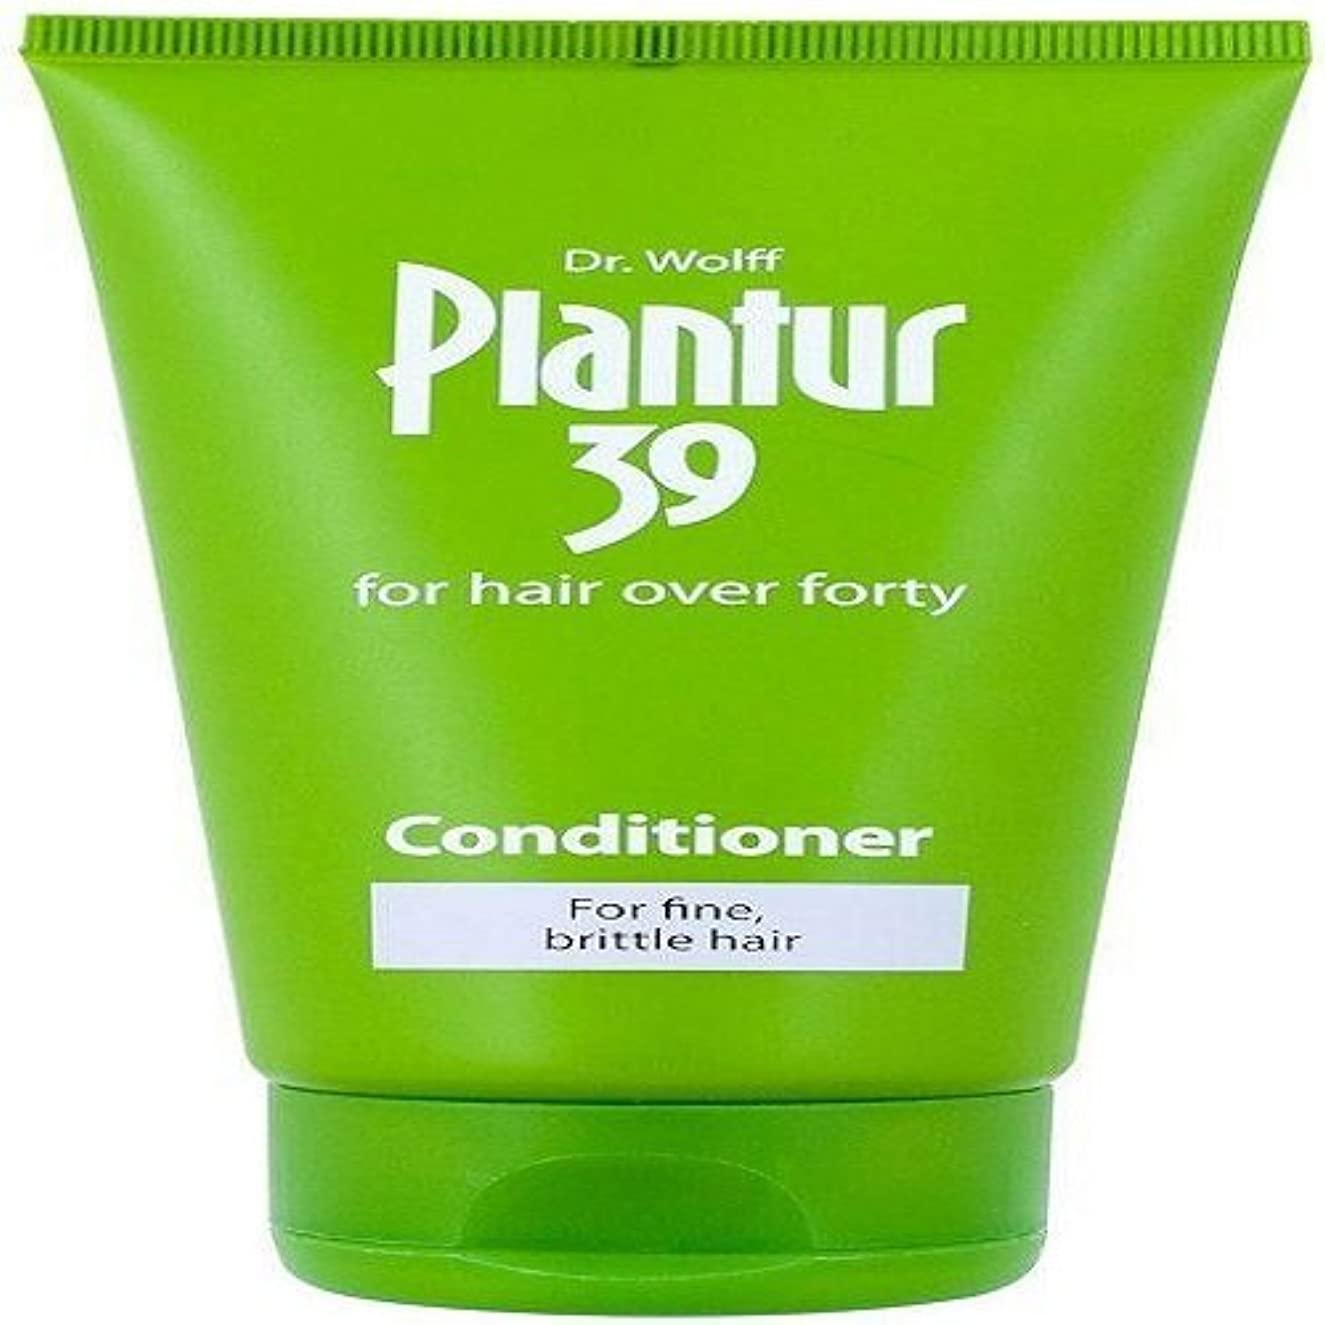 ぼろエスカレーターハムPlantur 39 150ml Fine & Brittle hair conditioner by Plantur